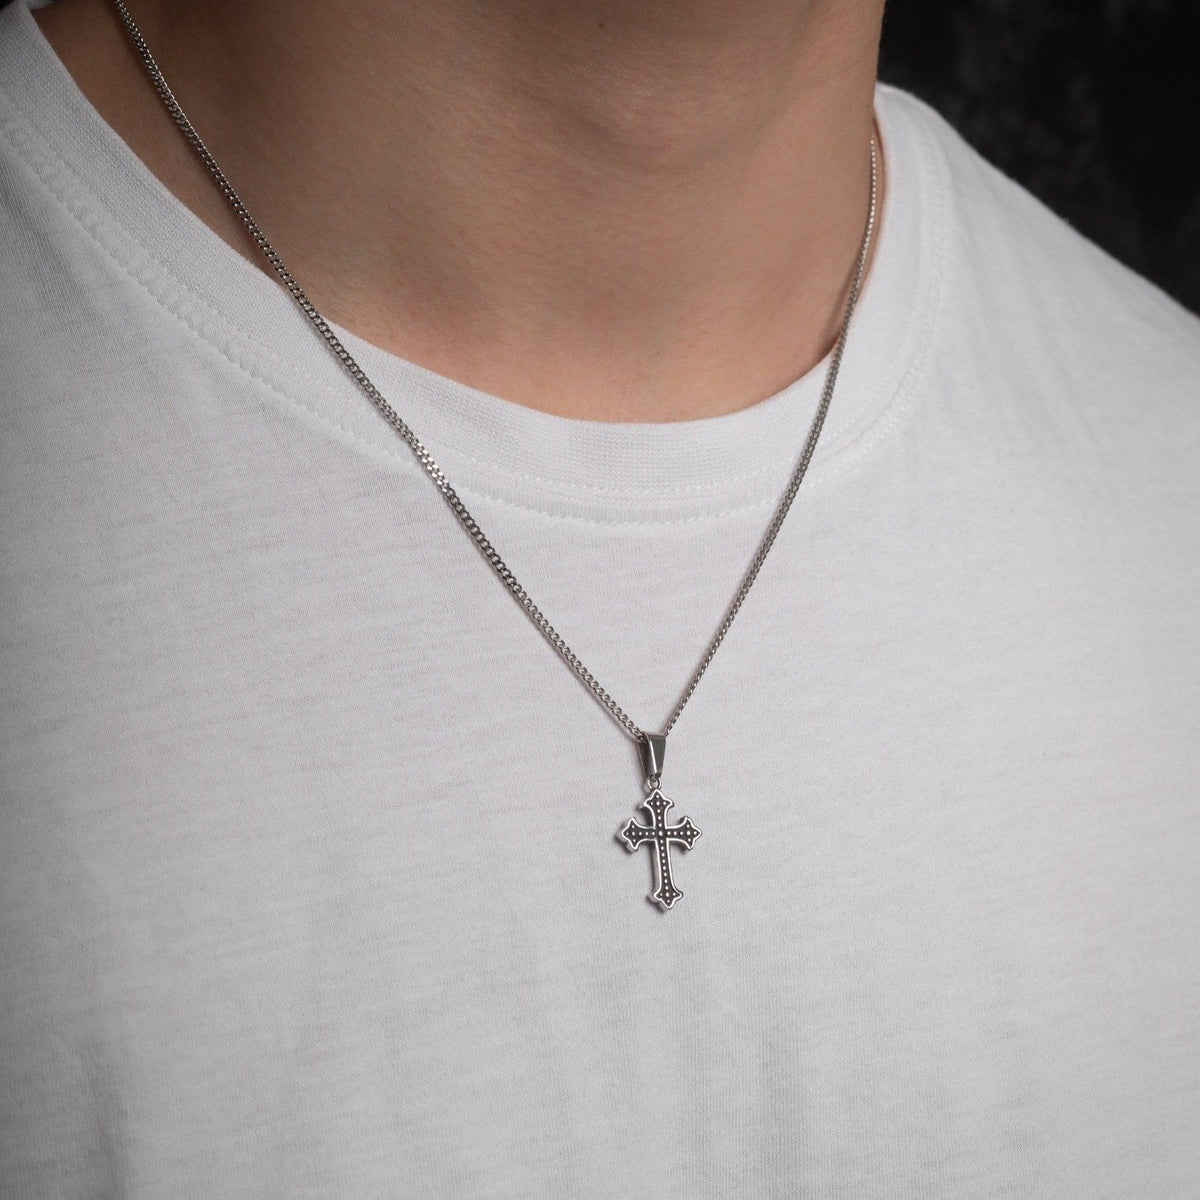 French Cross Pendant Necklace - STATEMENT